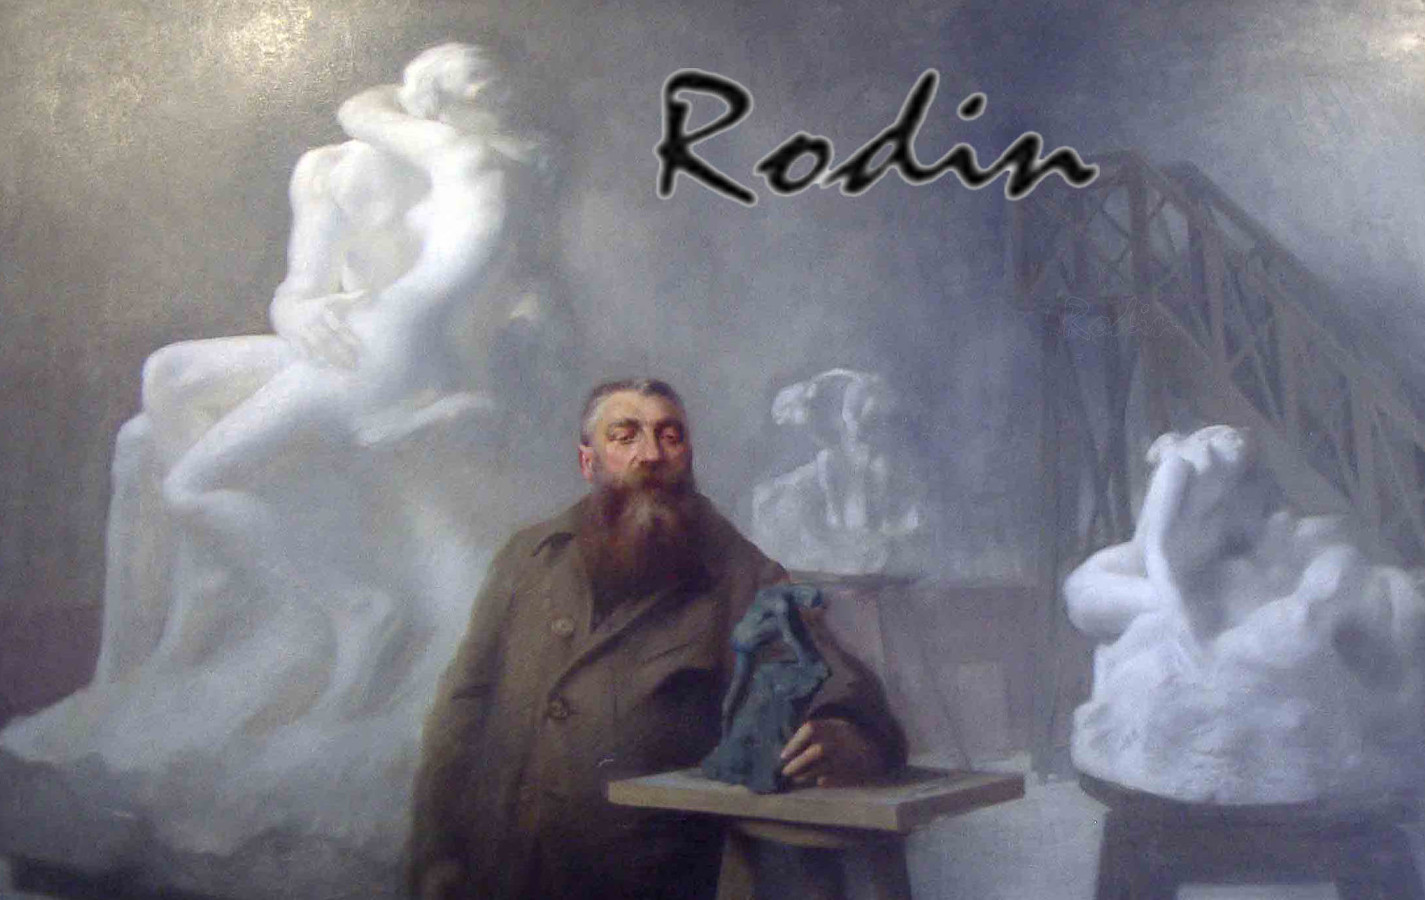 The Impressionism of Auguste Rodin. The incomplete magic of the unfinished impressionism.